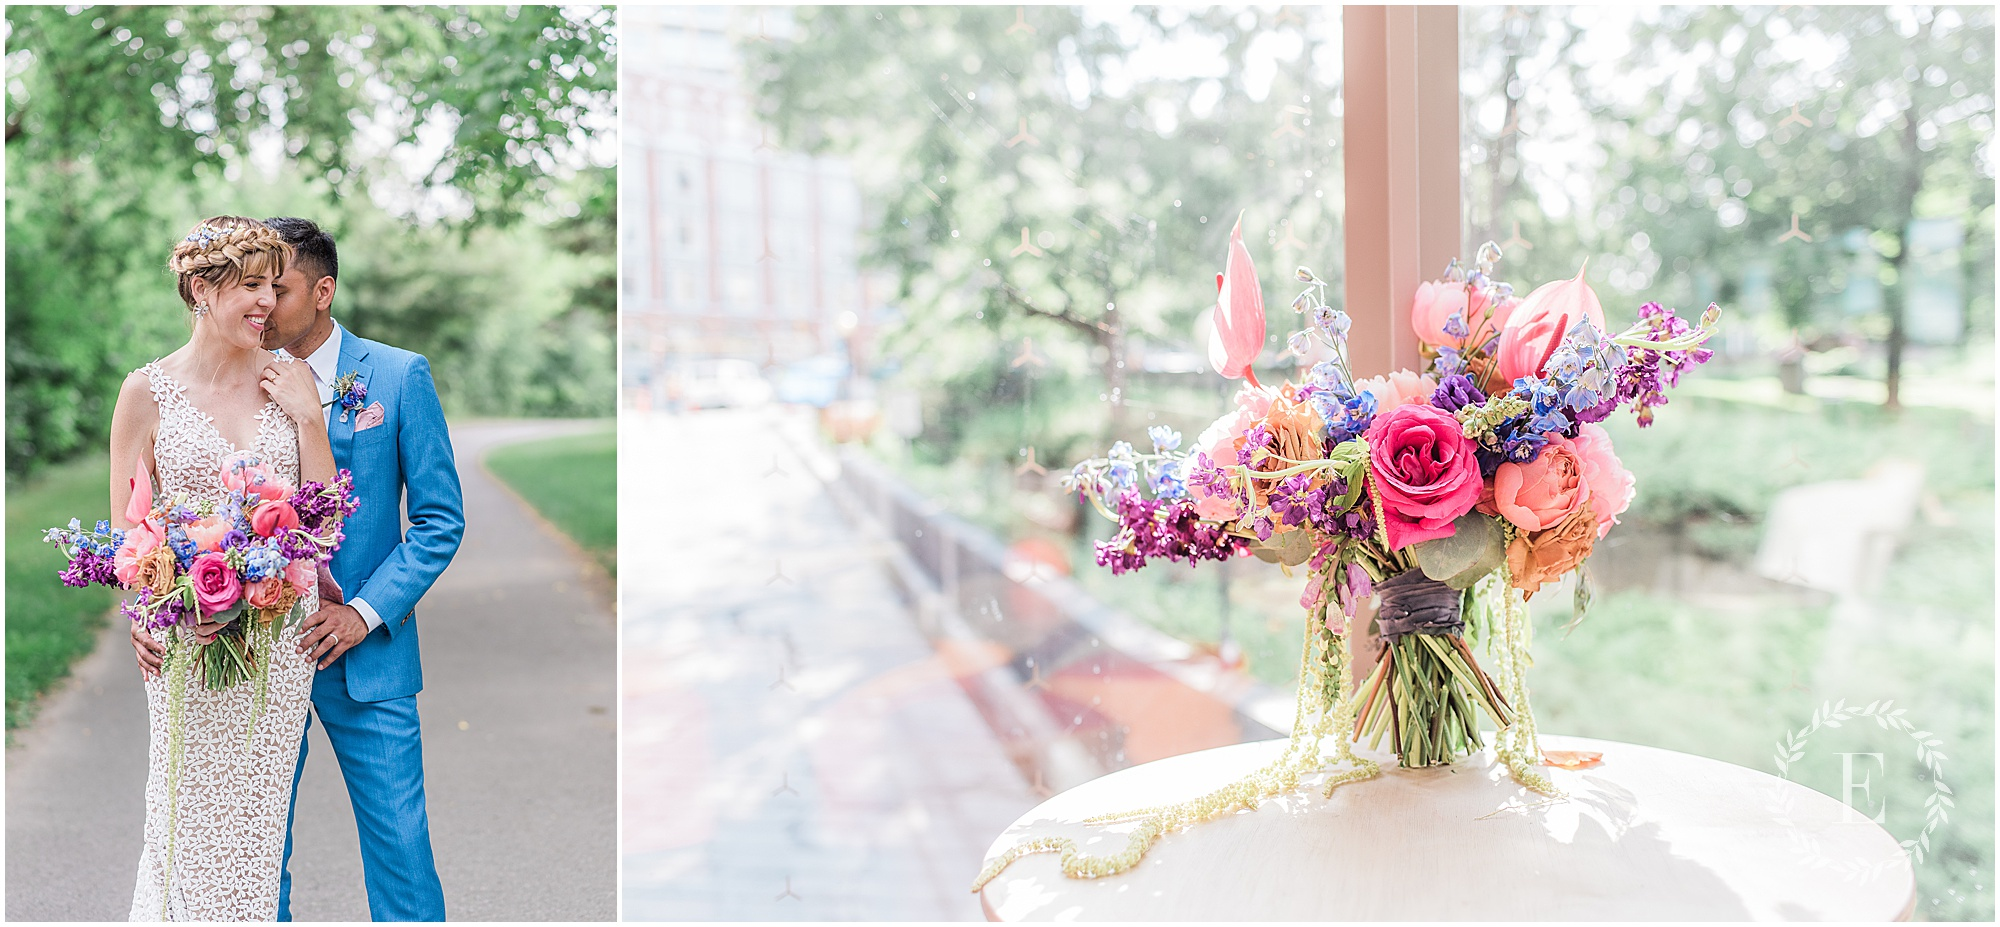 557 Cait and Saaqib Jabberwocky Ottawa Wedding 2019 - Photography by Emma.jpg